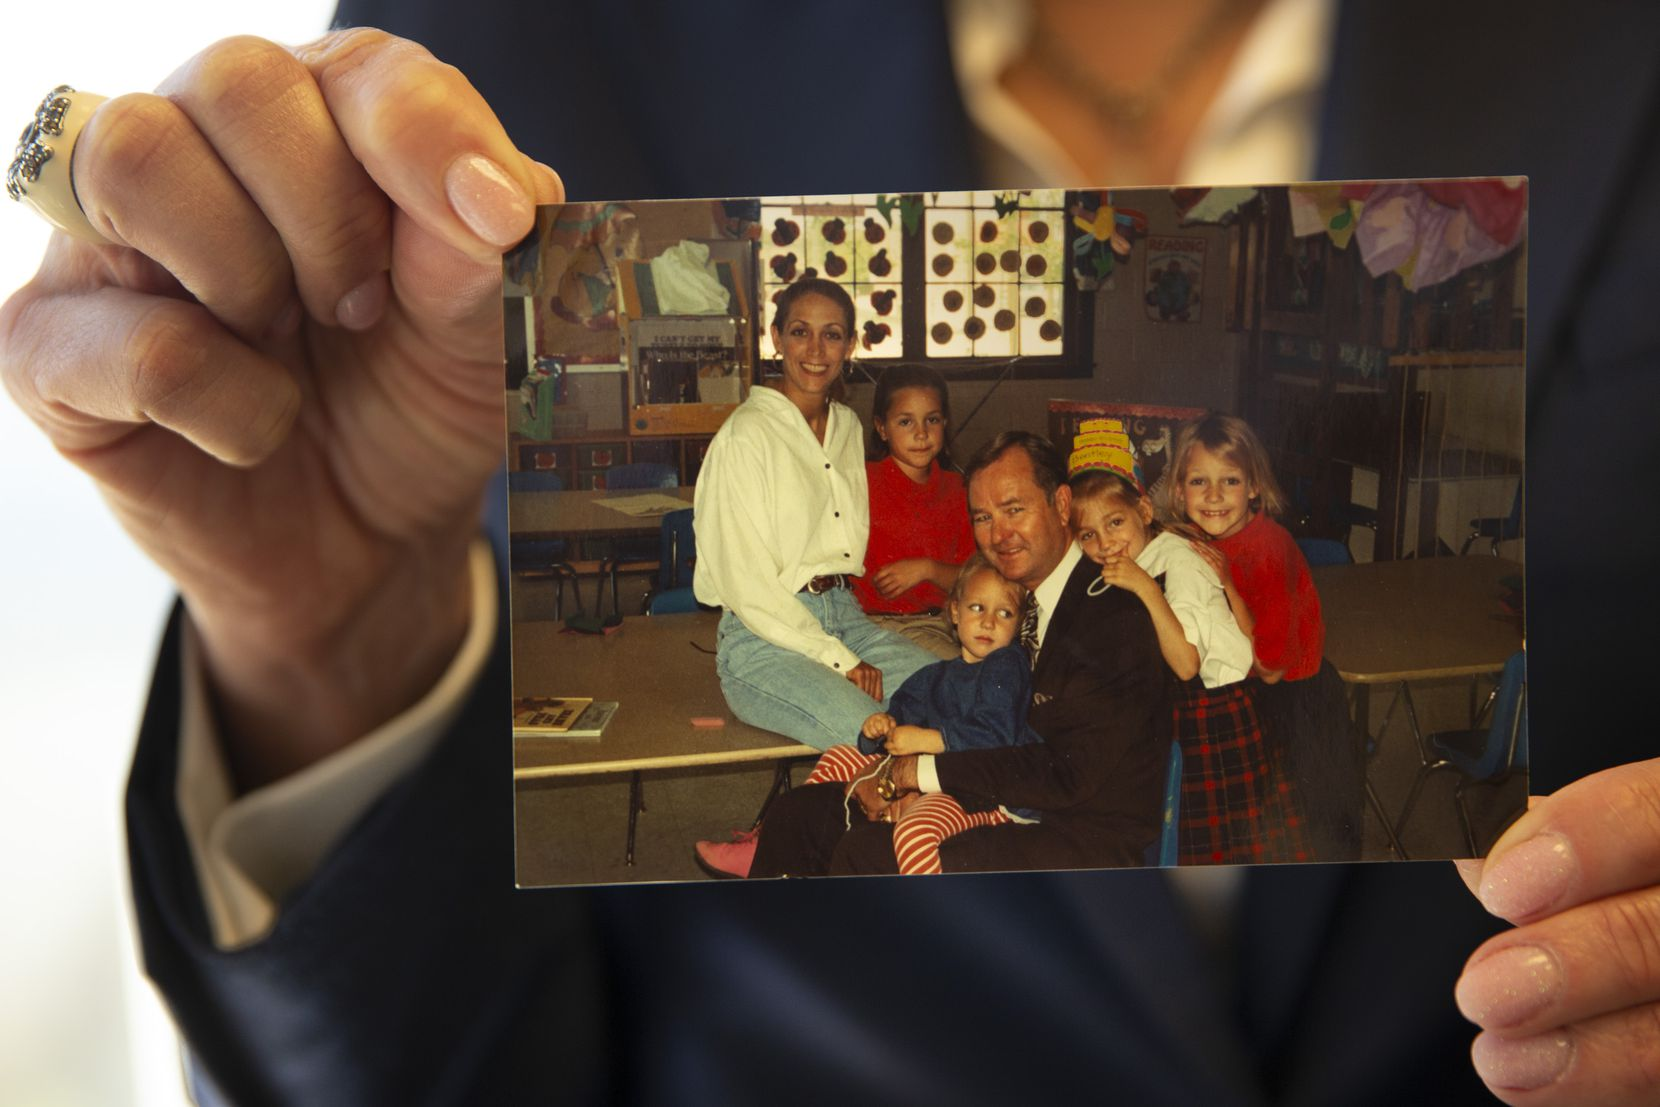 Terry Bentley Hill holds a family photograph from 1994 that includes all four of her daughters, including the youngest, Hallie, who is sitting in the lap of Hill's first husband, Danny. He died by suicide in 1995 while district attorney in Amarillo. Hallie died by suicide nine years later.